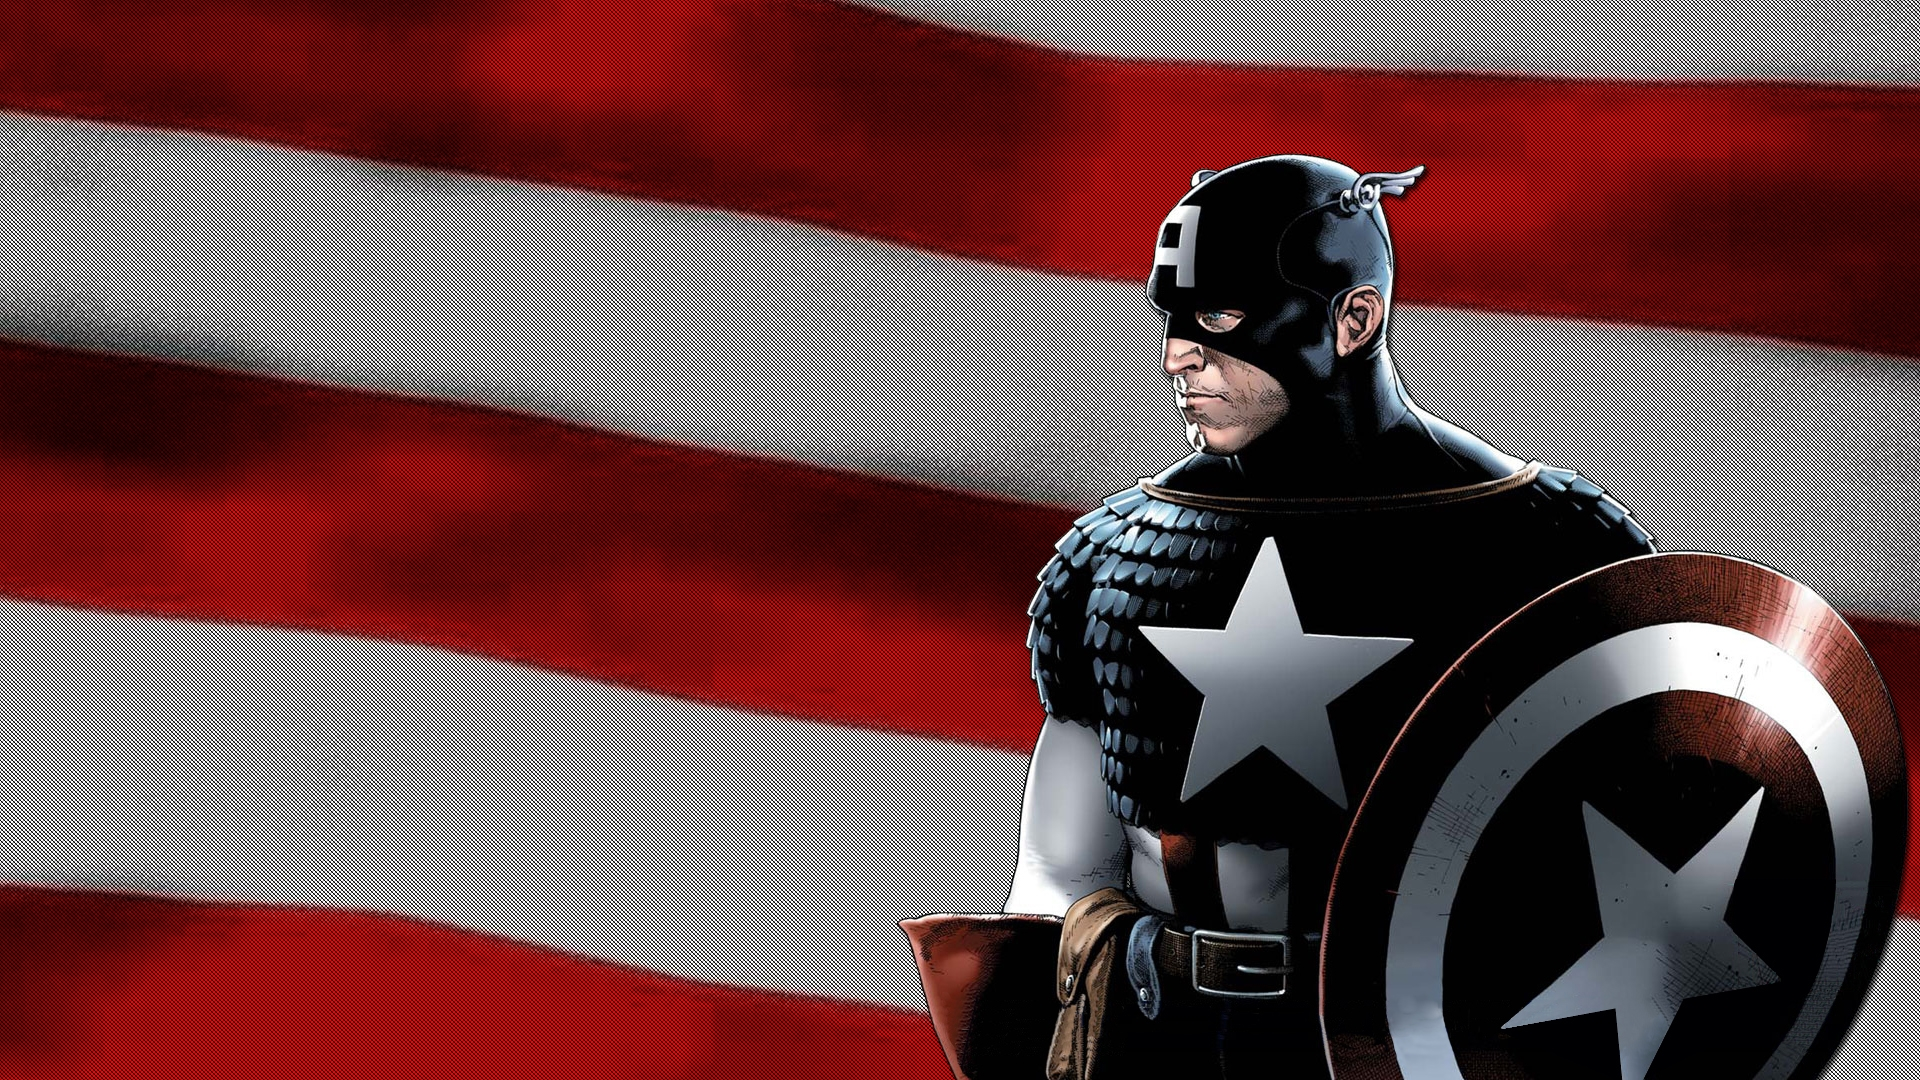 captain america marvel us flag shield hd